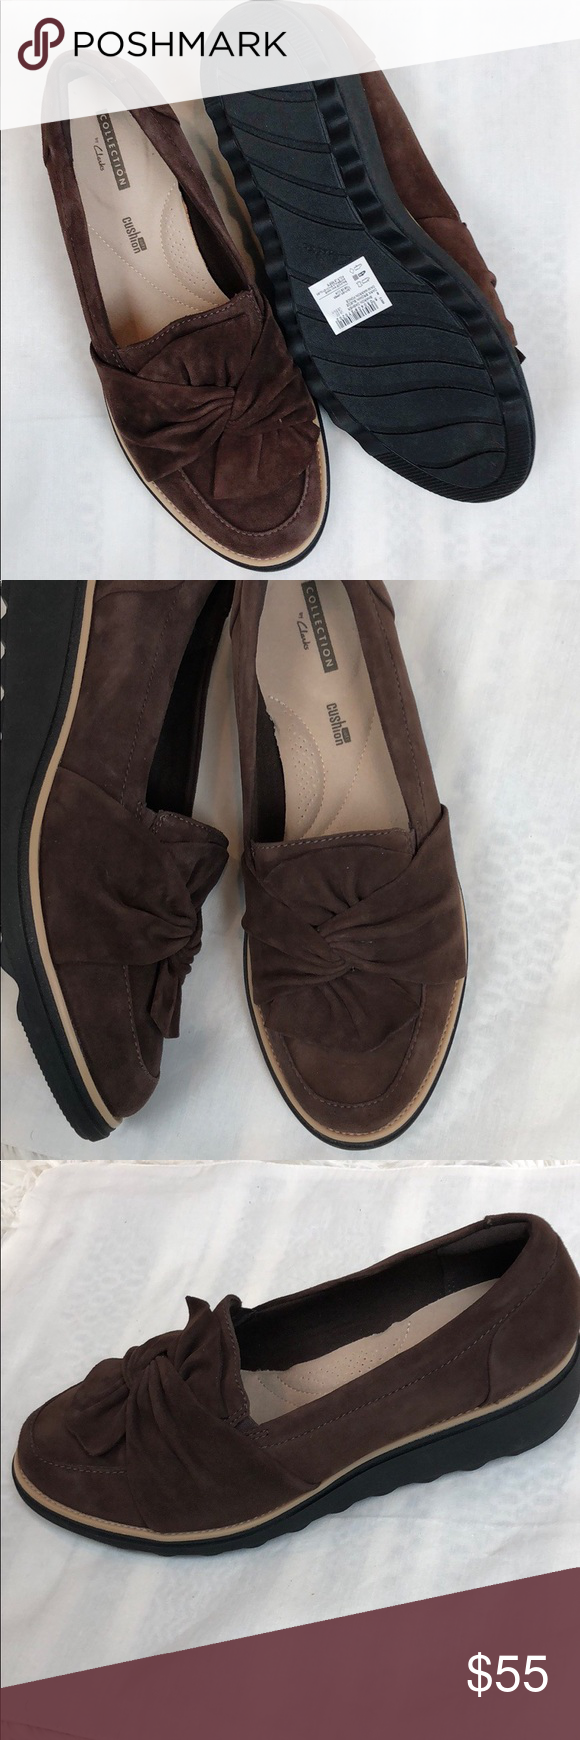 2e31a9bc1b6 Clark s Collection Sharon Dasher loafers NWOB Clark s dark brown suede  loafer. Knotted design on the toe top. Cushion insole. Black bottom Never  worn.